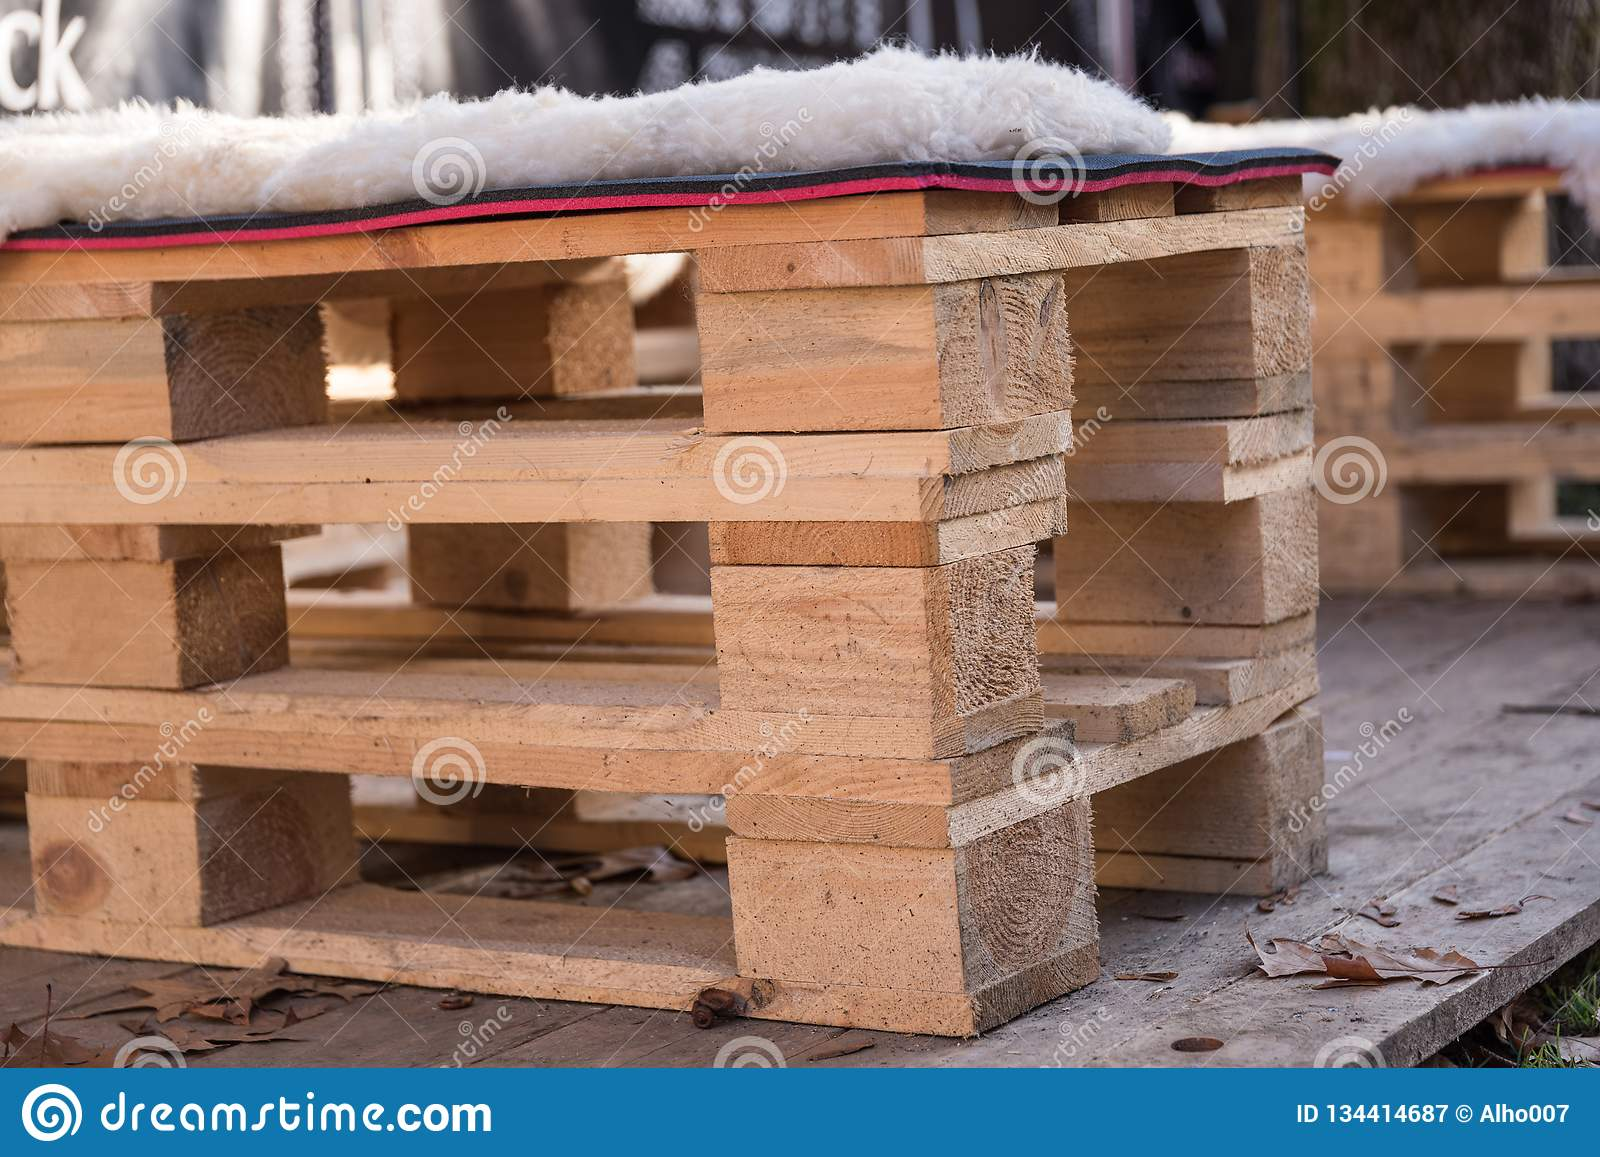 Rustic Garden Furniture Made Of Wooden Pallets Stock Image ...